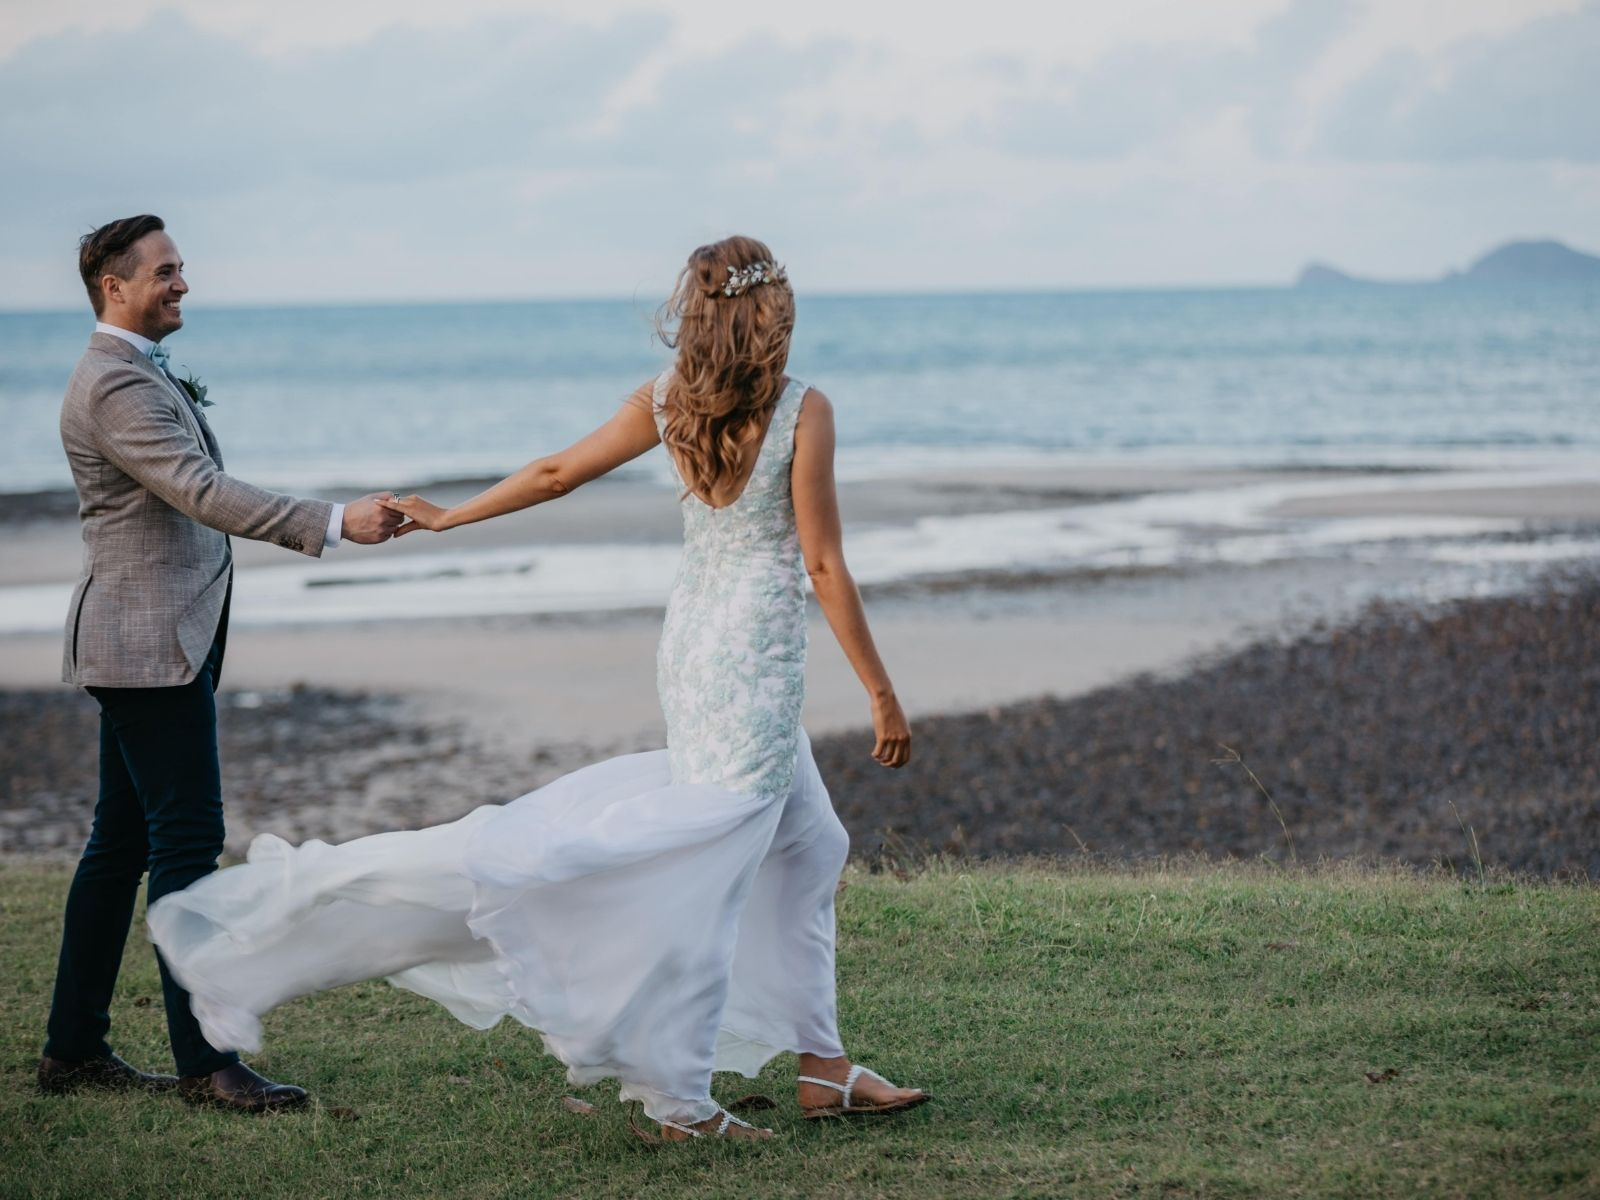 Bride and Groom walking on a beach at sunset at Paradise Cove Resort in the Whitsundays